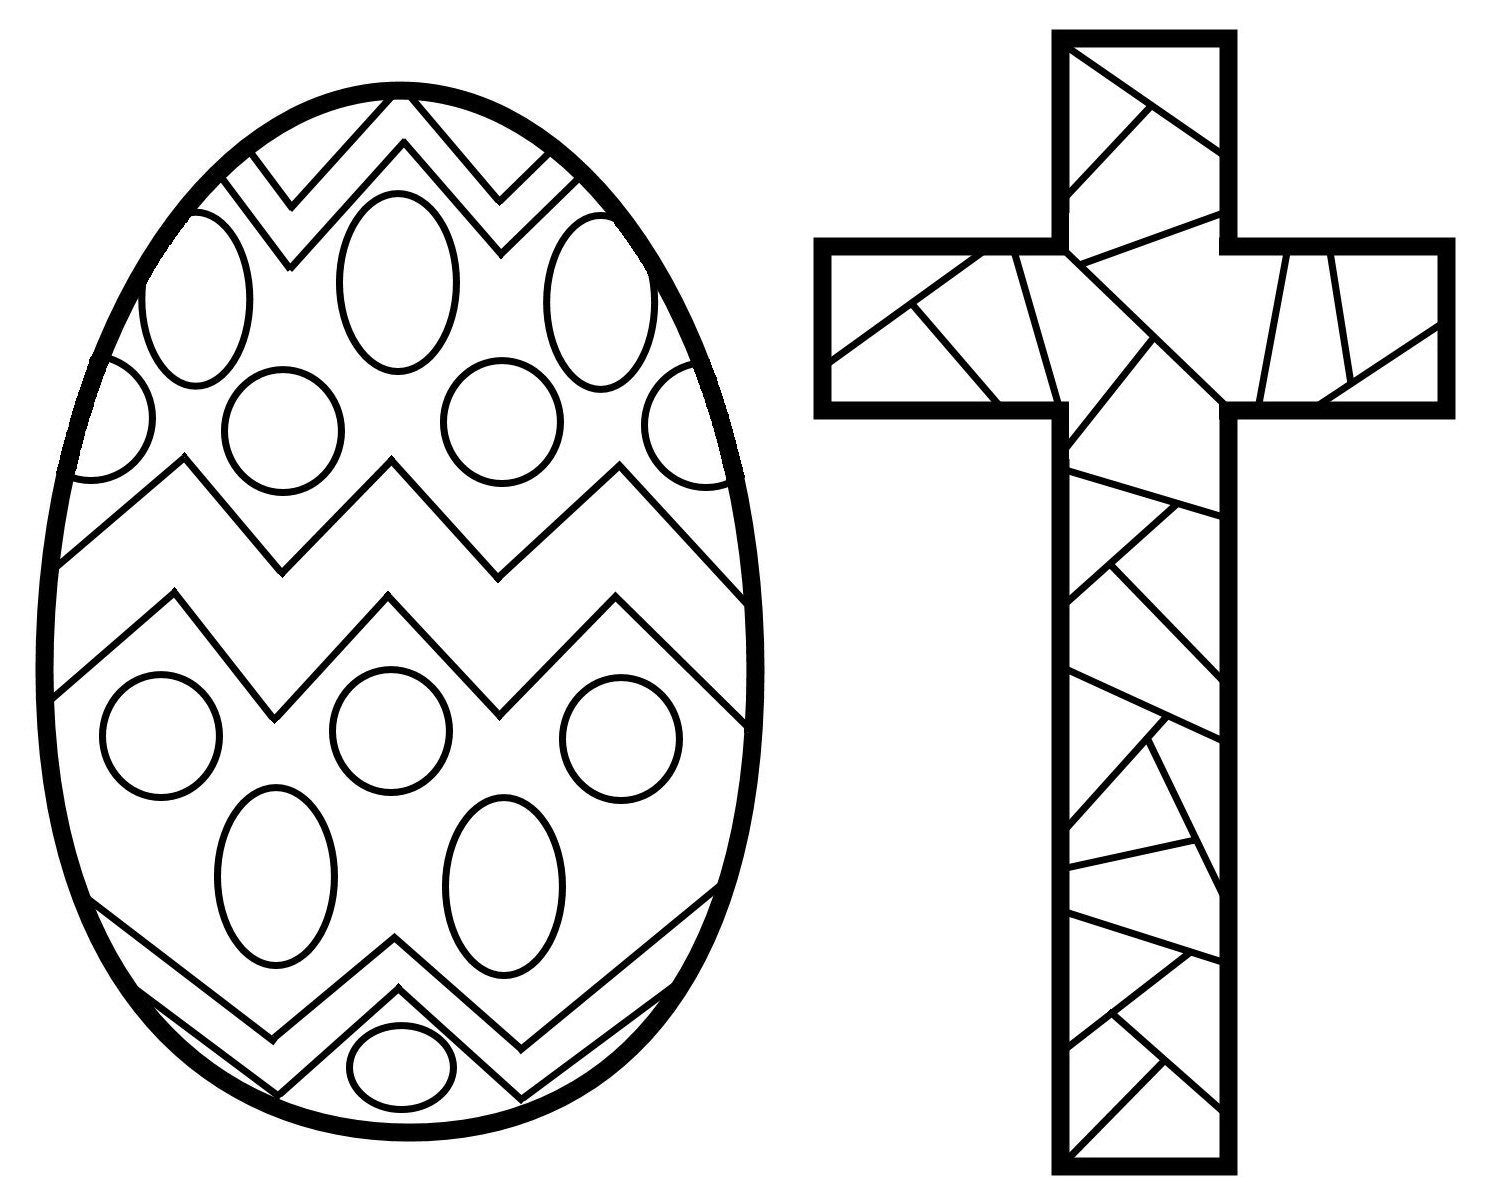 Easter Cross Coloring Pages Printable for Fancy Draw Print to Print Of Bunny Egg by Rustchic Bucket Printable